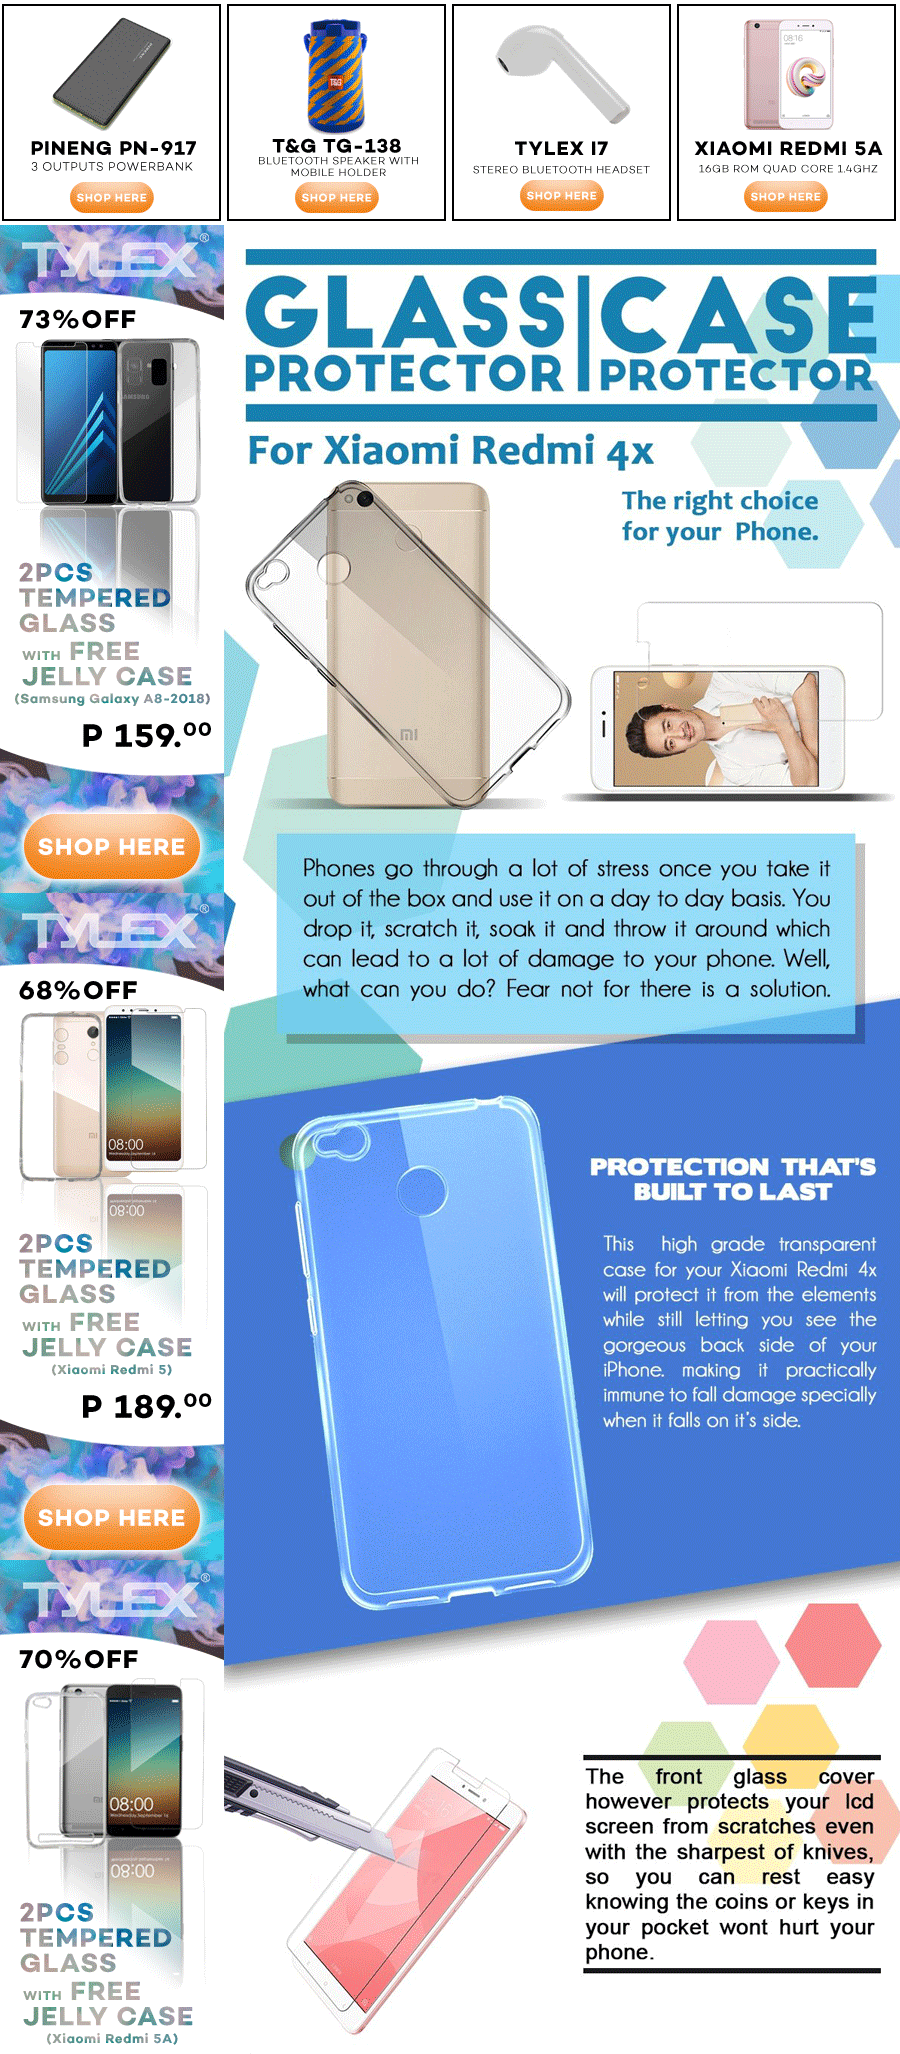 Specifications of Tylex Tempered Glass 2 Pcs with FREE Jelly Case For Xiaomi Redmi 4X (